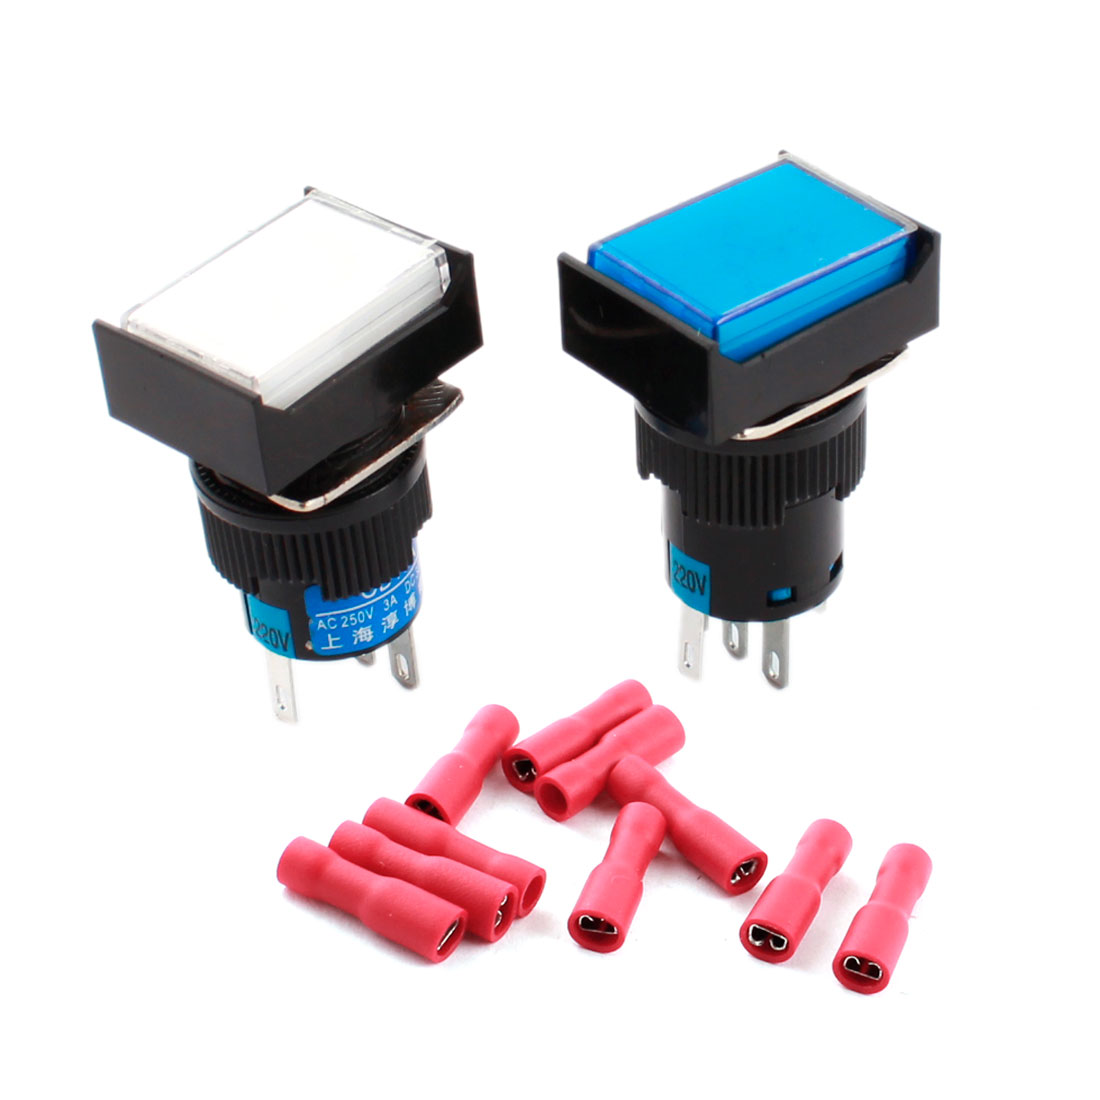 2 Pcs AC 220V Blue White Pilot Light 5Pins 16mm Threaded Panel Mounted SPDT Momentary Rectangle Head Push Button Switch + 10pcs Crimp Terminals